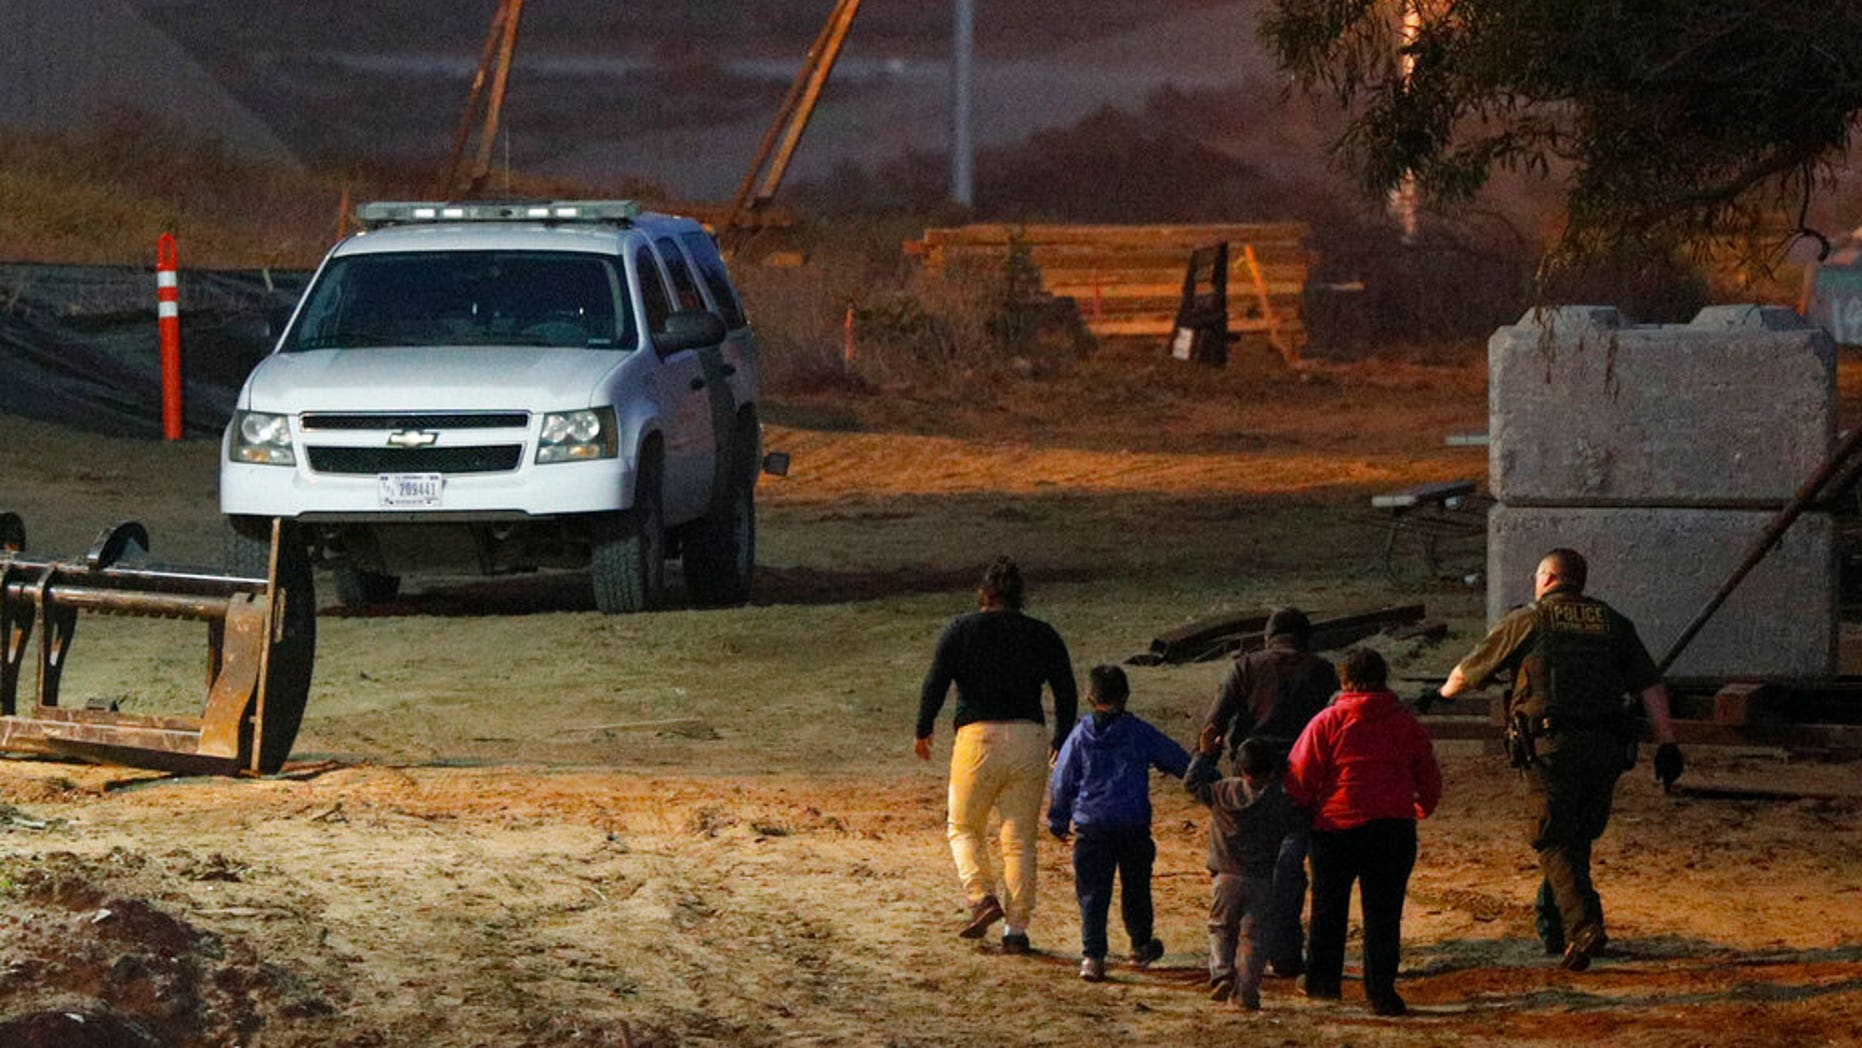 FILE - In this Dec. 3, 2018, file photo, migrants are escorted by a U.S. Border Patrol agent as they are detained after climbing over the border wall from Playas de Tijuana, Mexico, to San Ysidro, Calif. (AP Photo/Rebecca Blackwell, File)